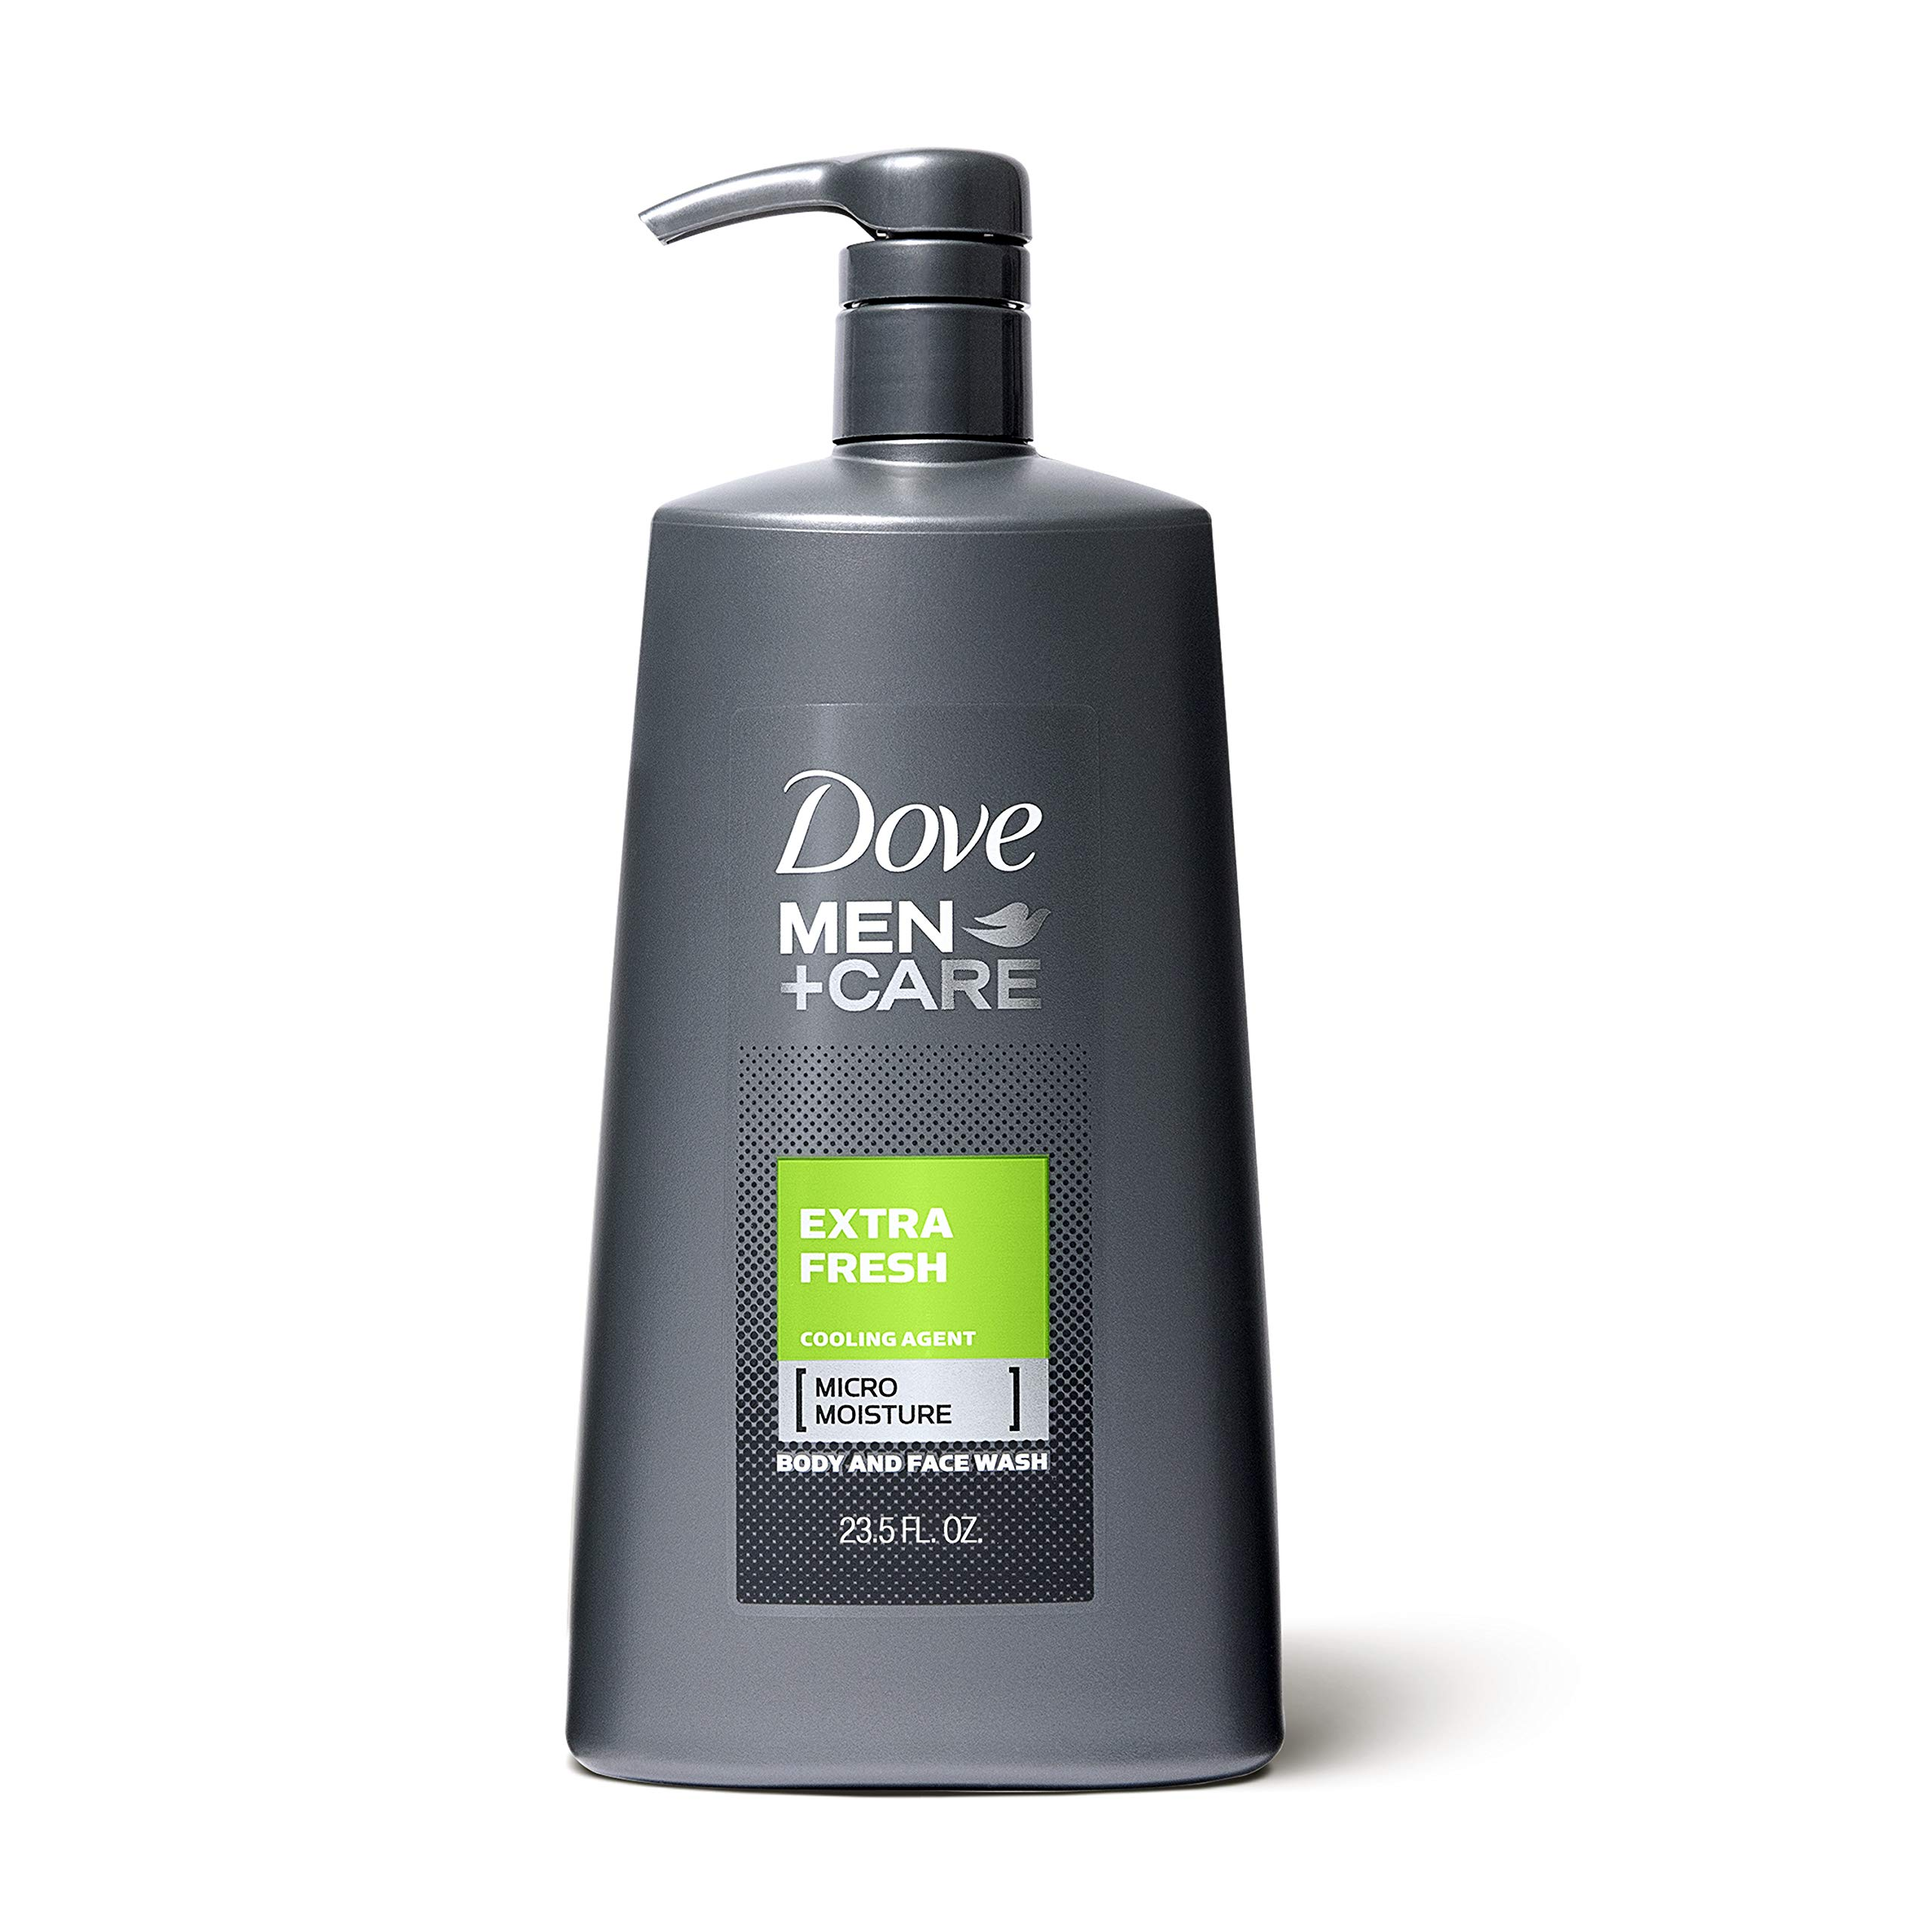 Dove Men+Care Body and Face Wash Pump for Dry Skin Extra Fresh More Moisturizing Than Typical Bodywash 23.5 oz